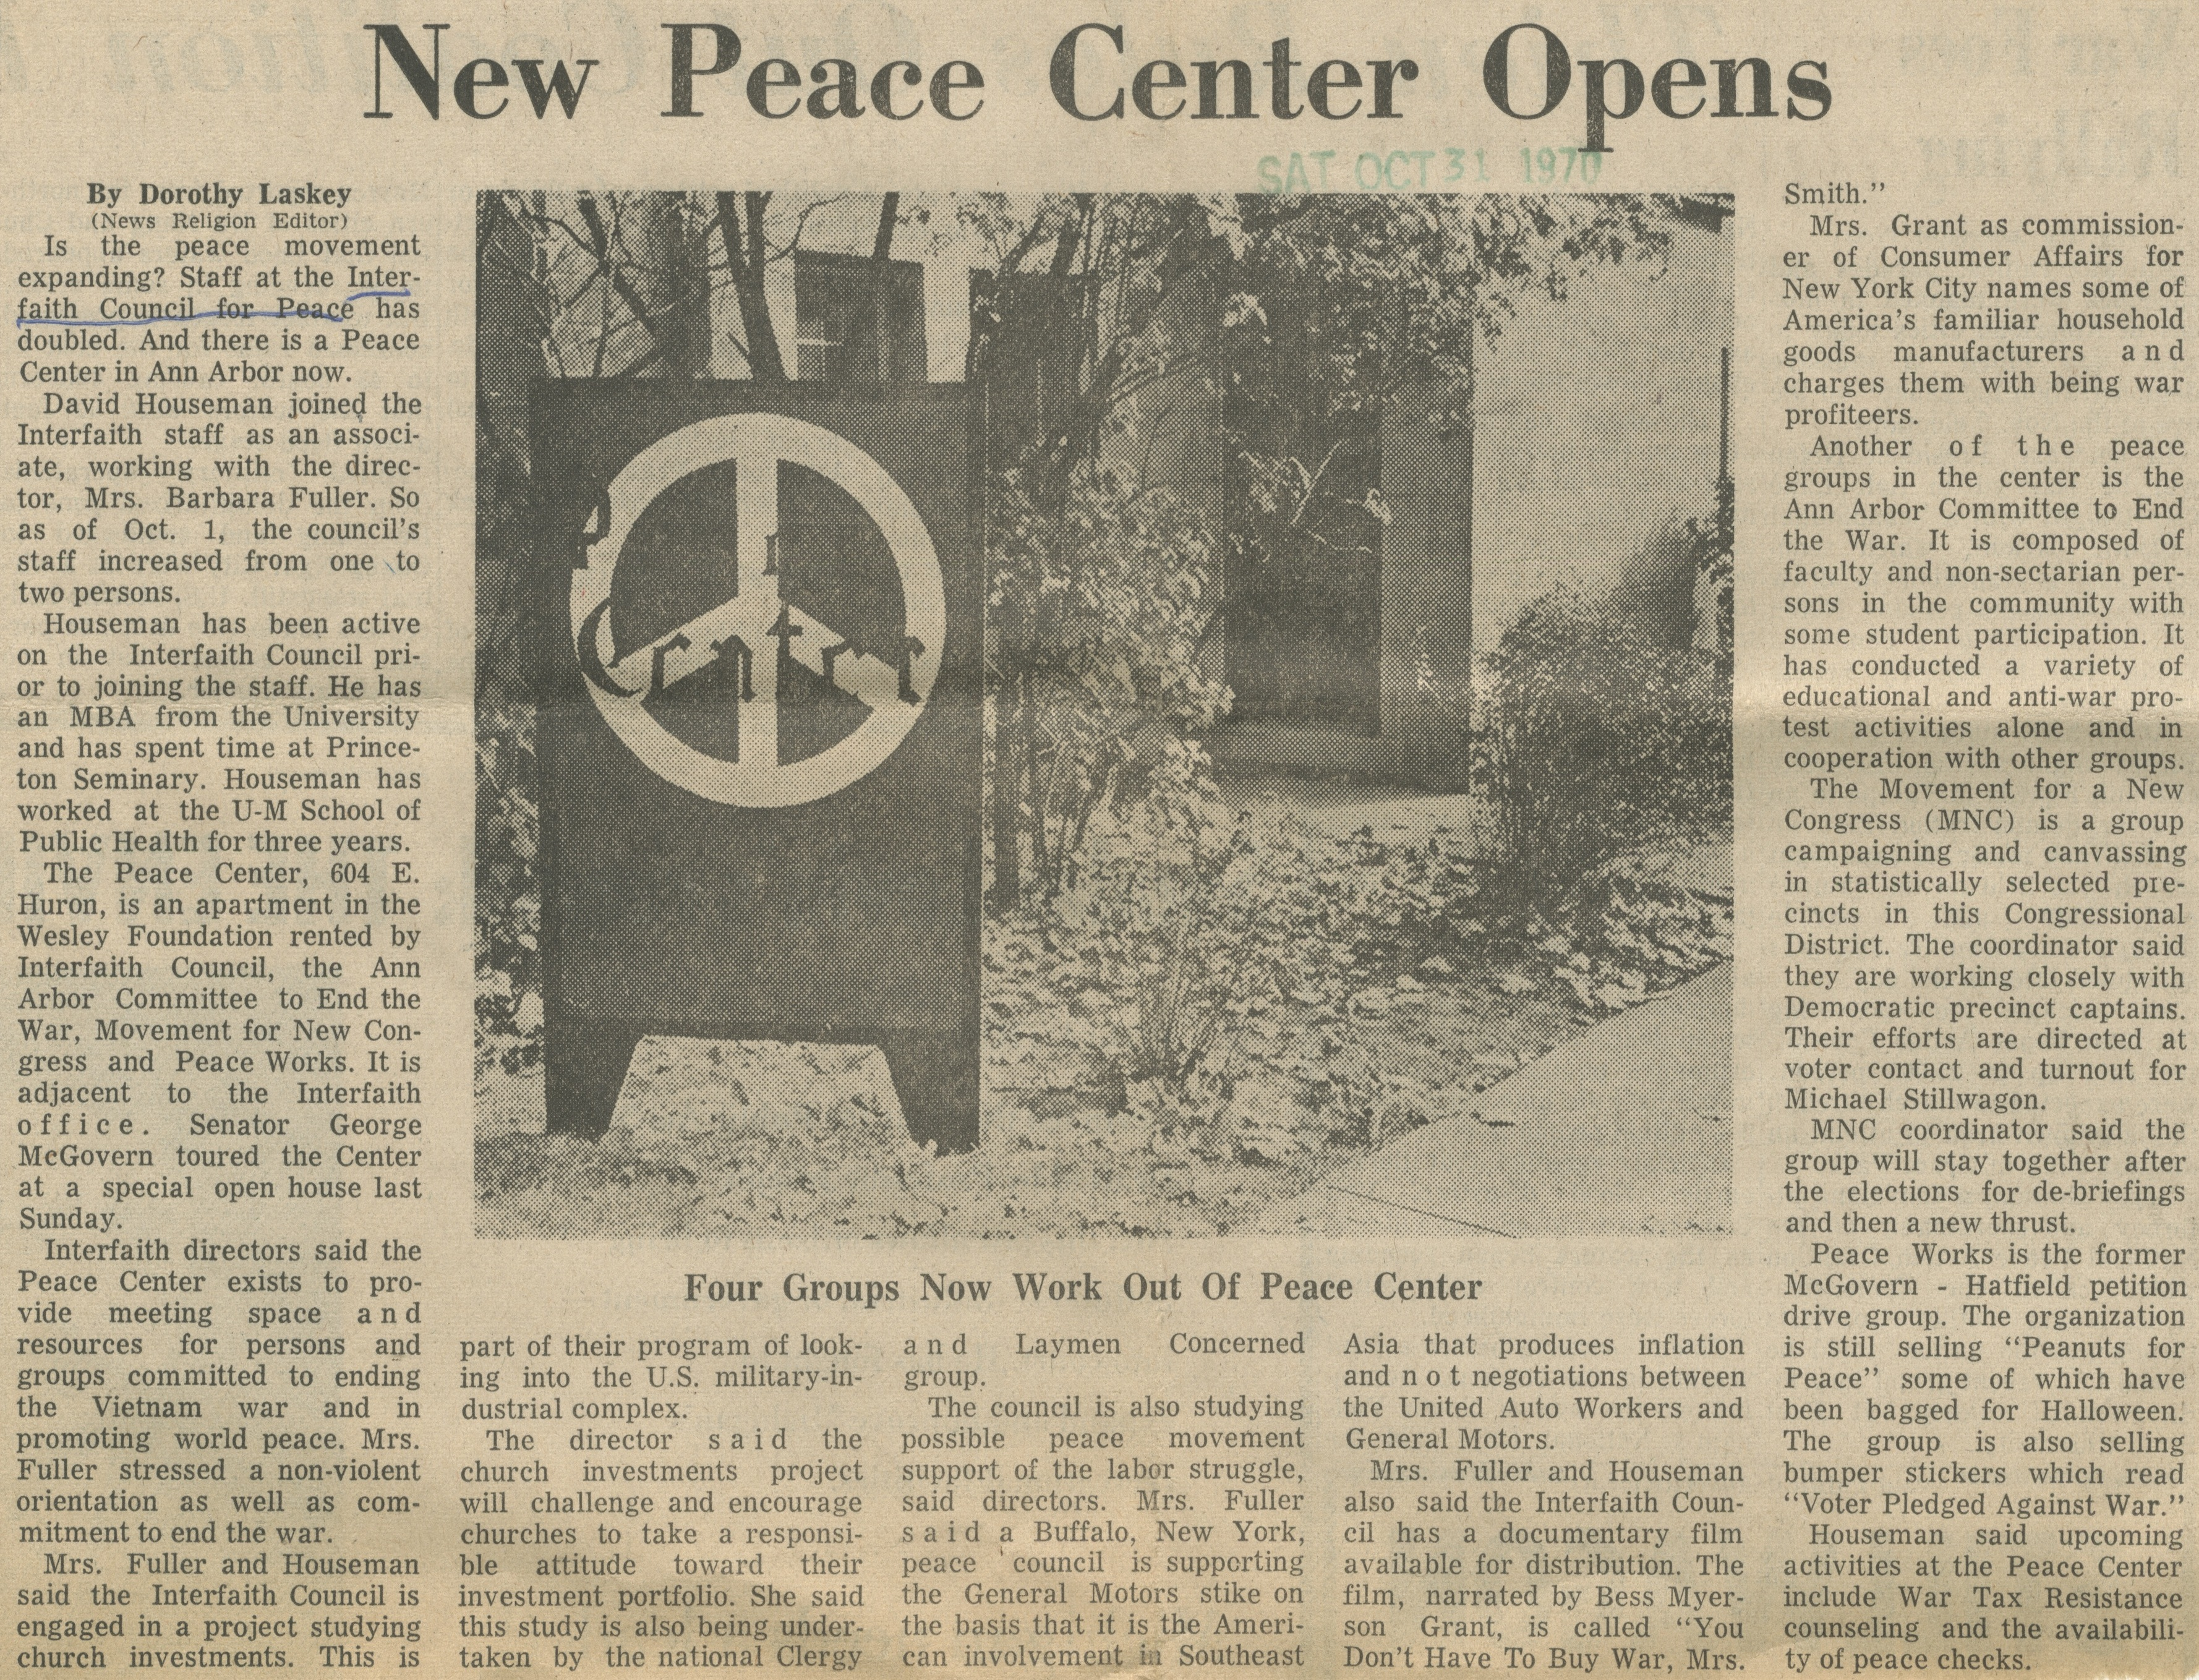 New Peace Center Opens image